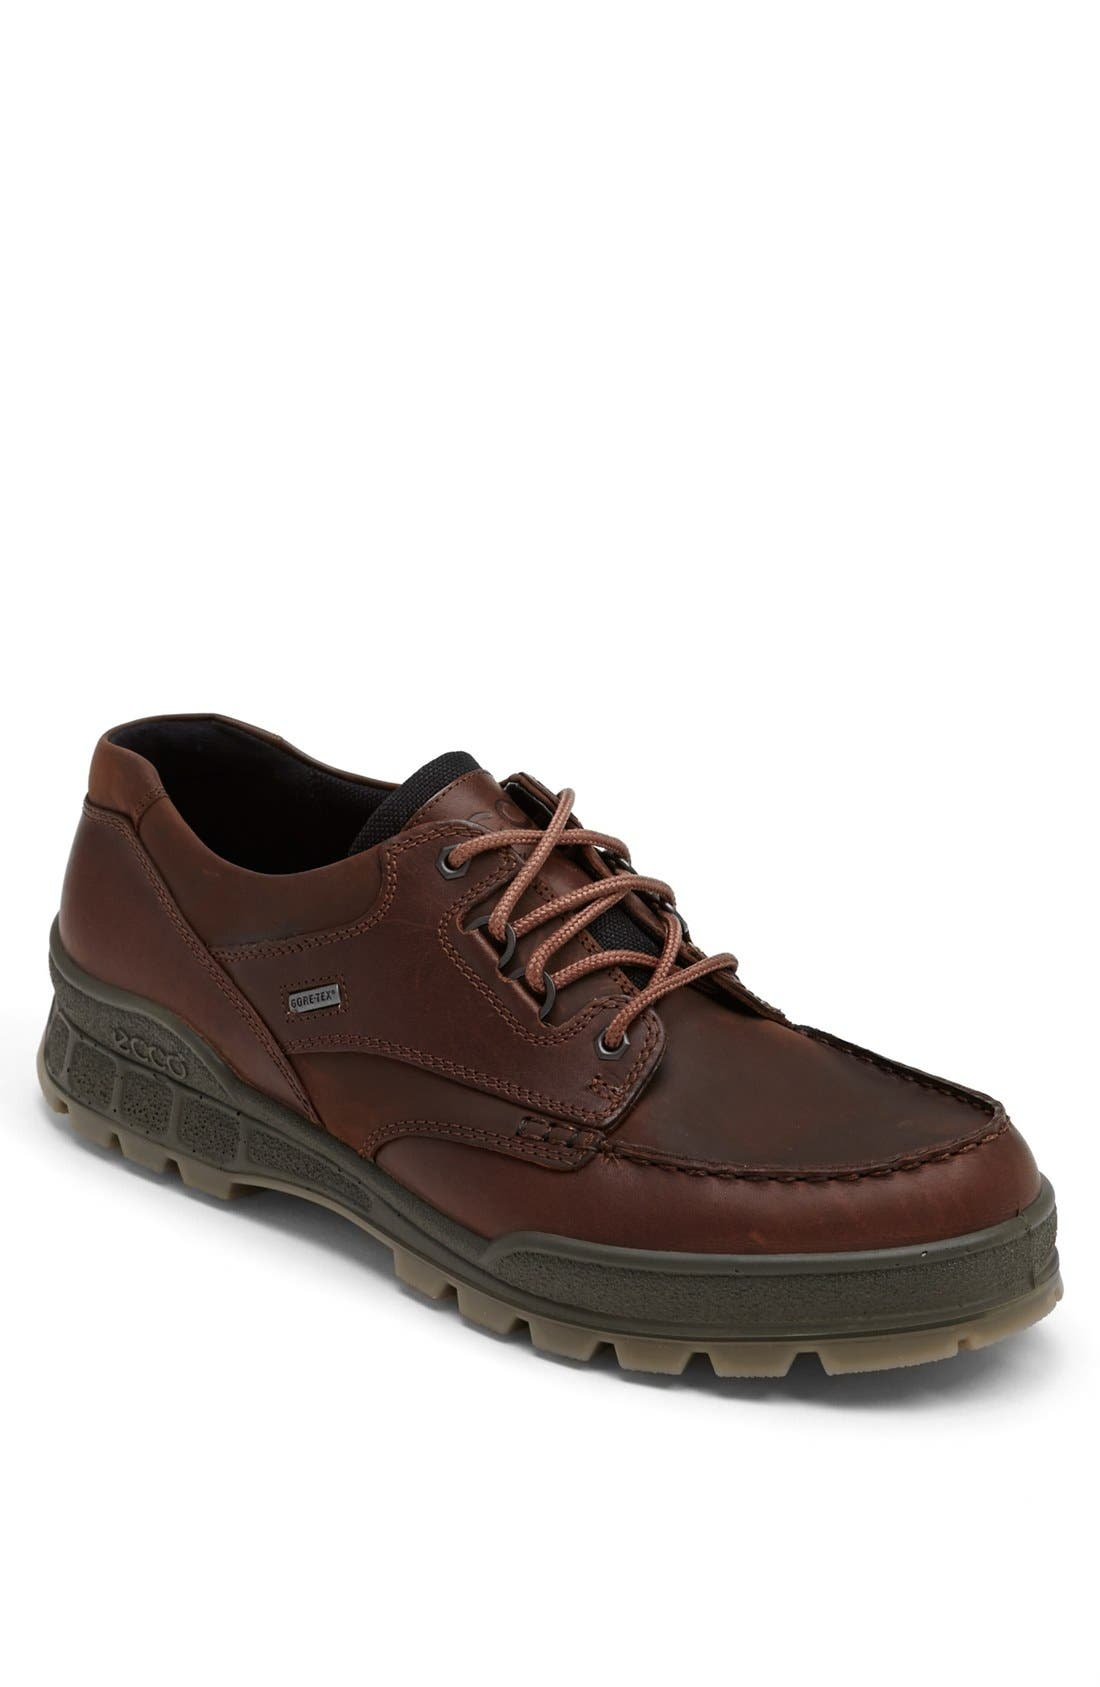 Alternate Image 1 Selected - ECCO 'Track II Moc Low' Oxford (Men)